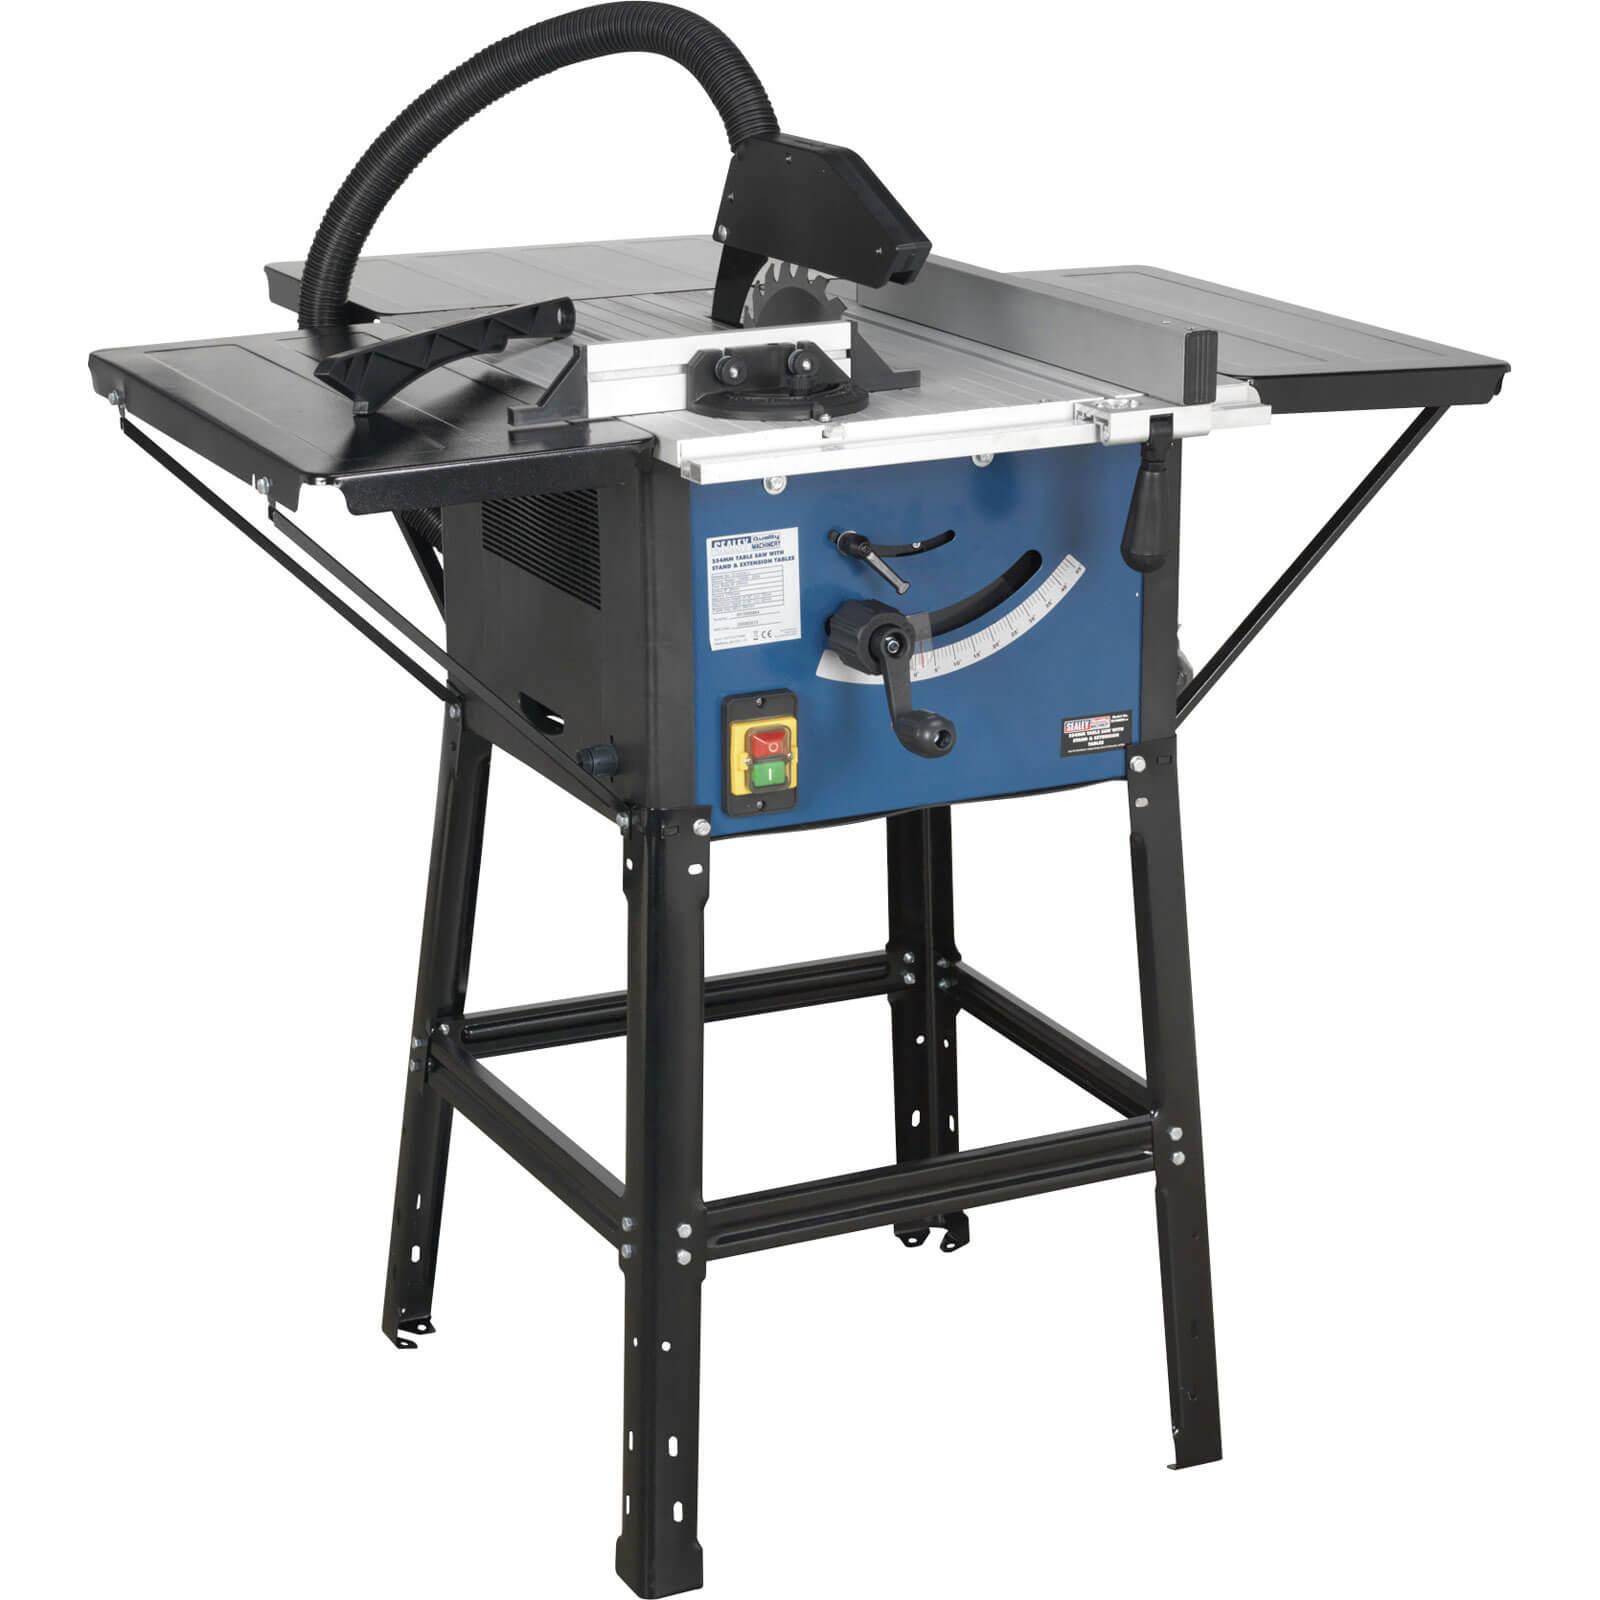 Saws Sealey Table Saw With Stand Extension Wings 10 254mm Blade 1500w 240v Special Offers